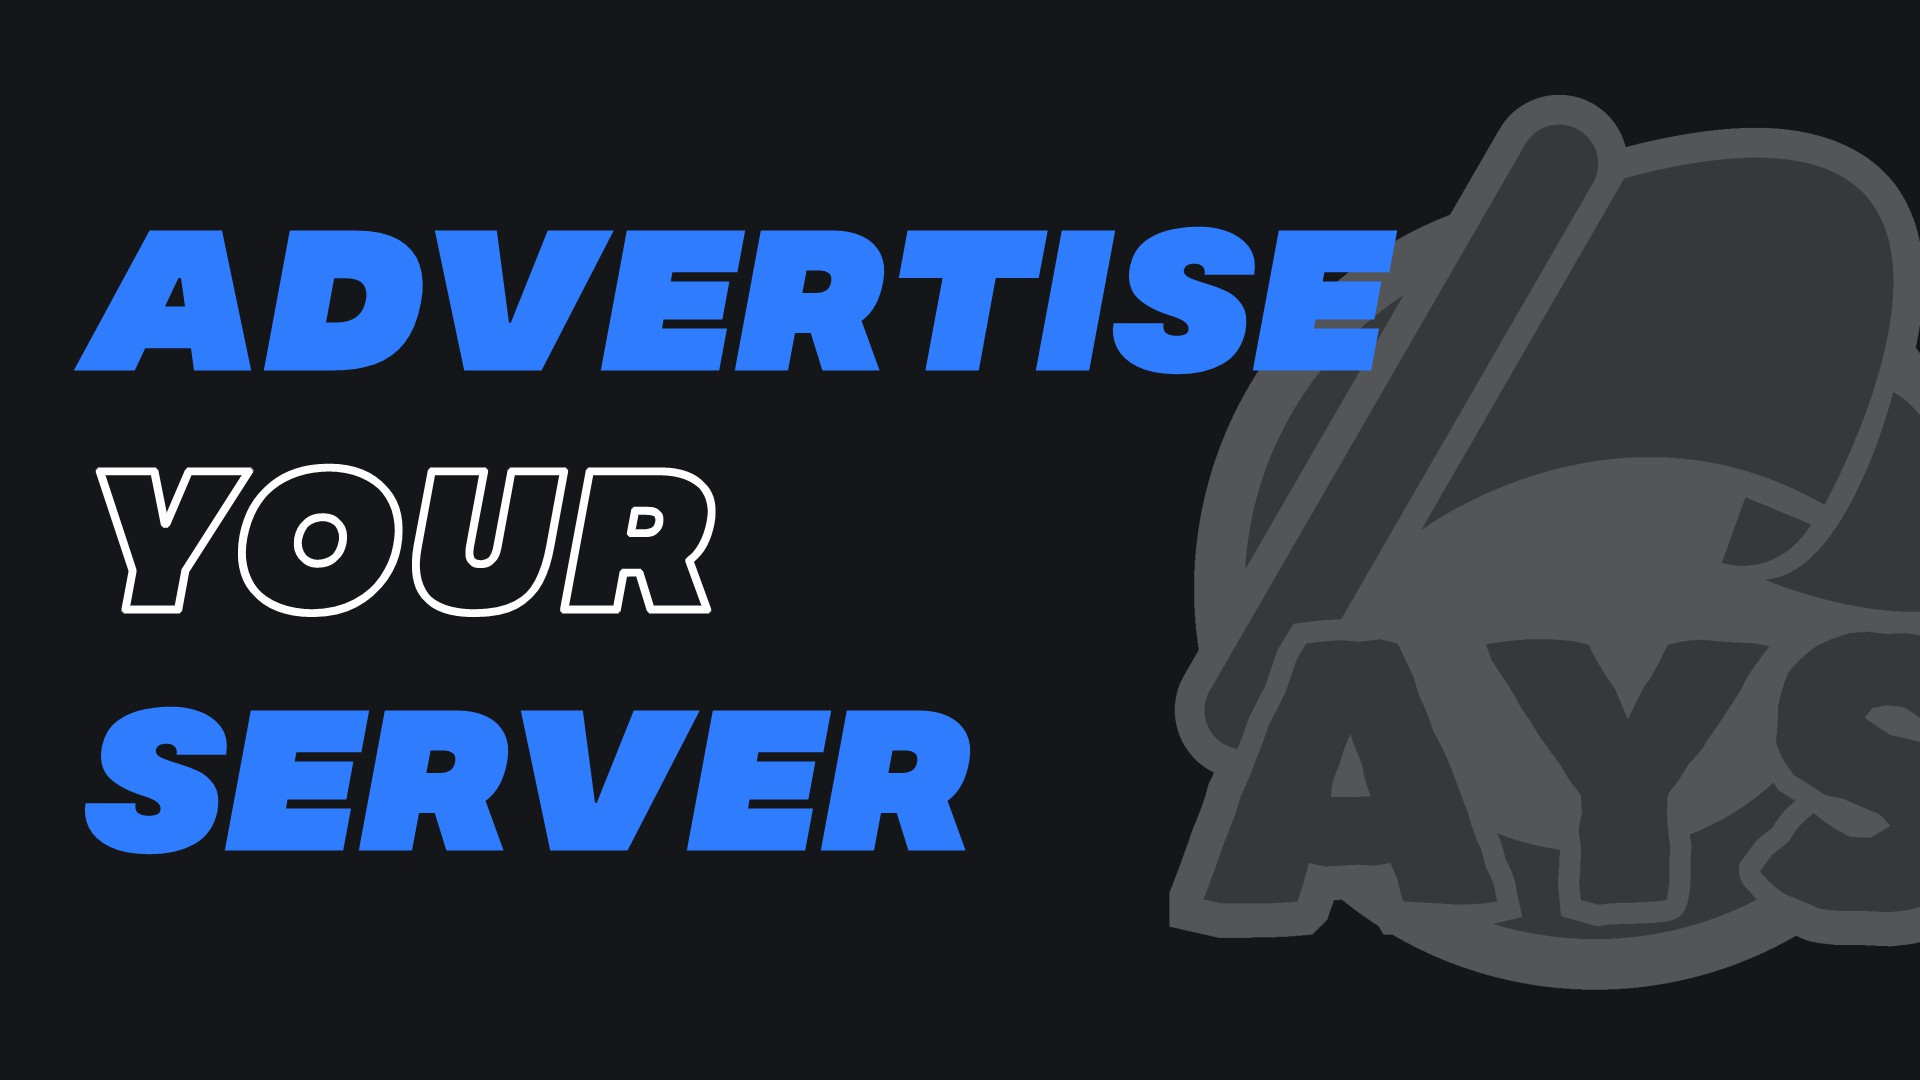 Advertise Your Server Small Banner